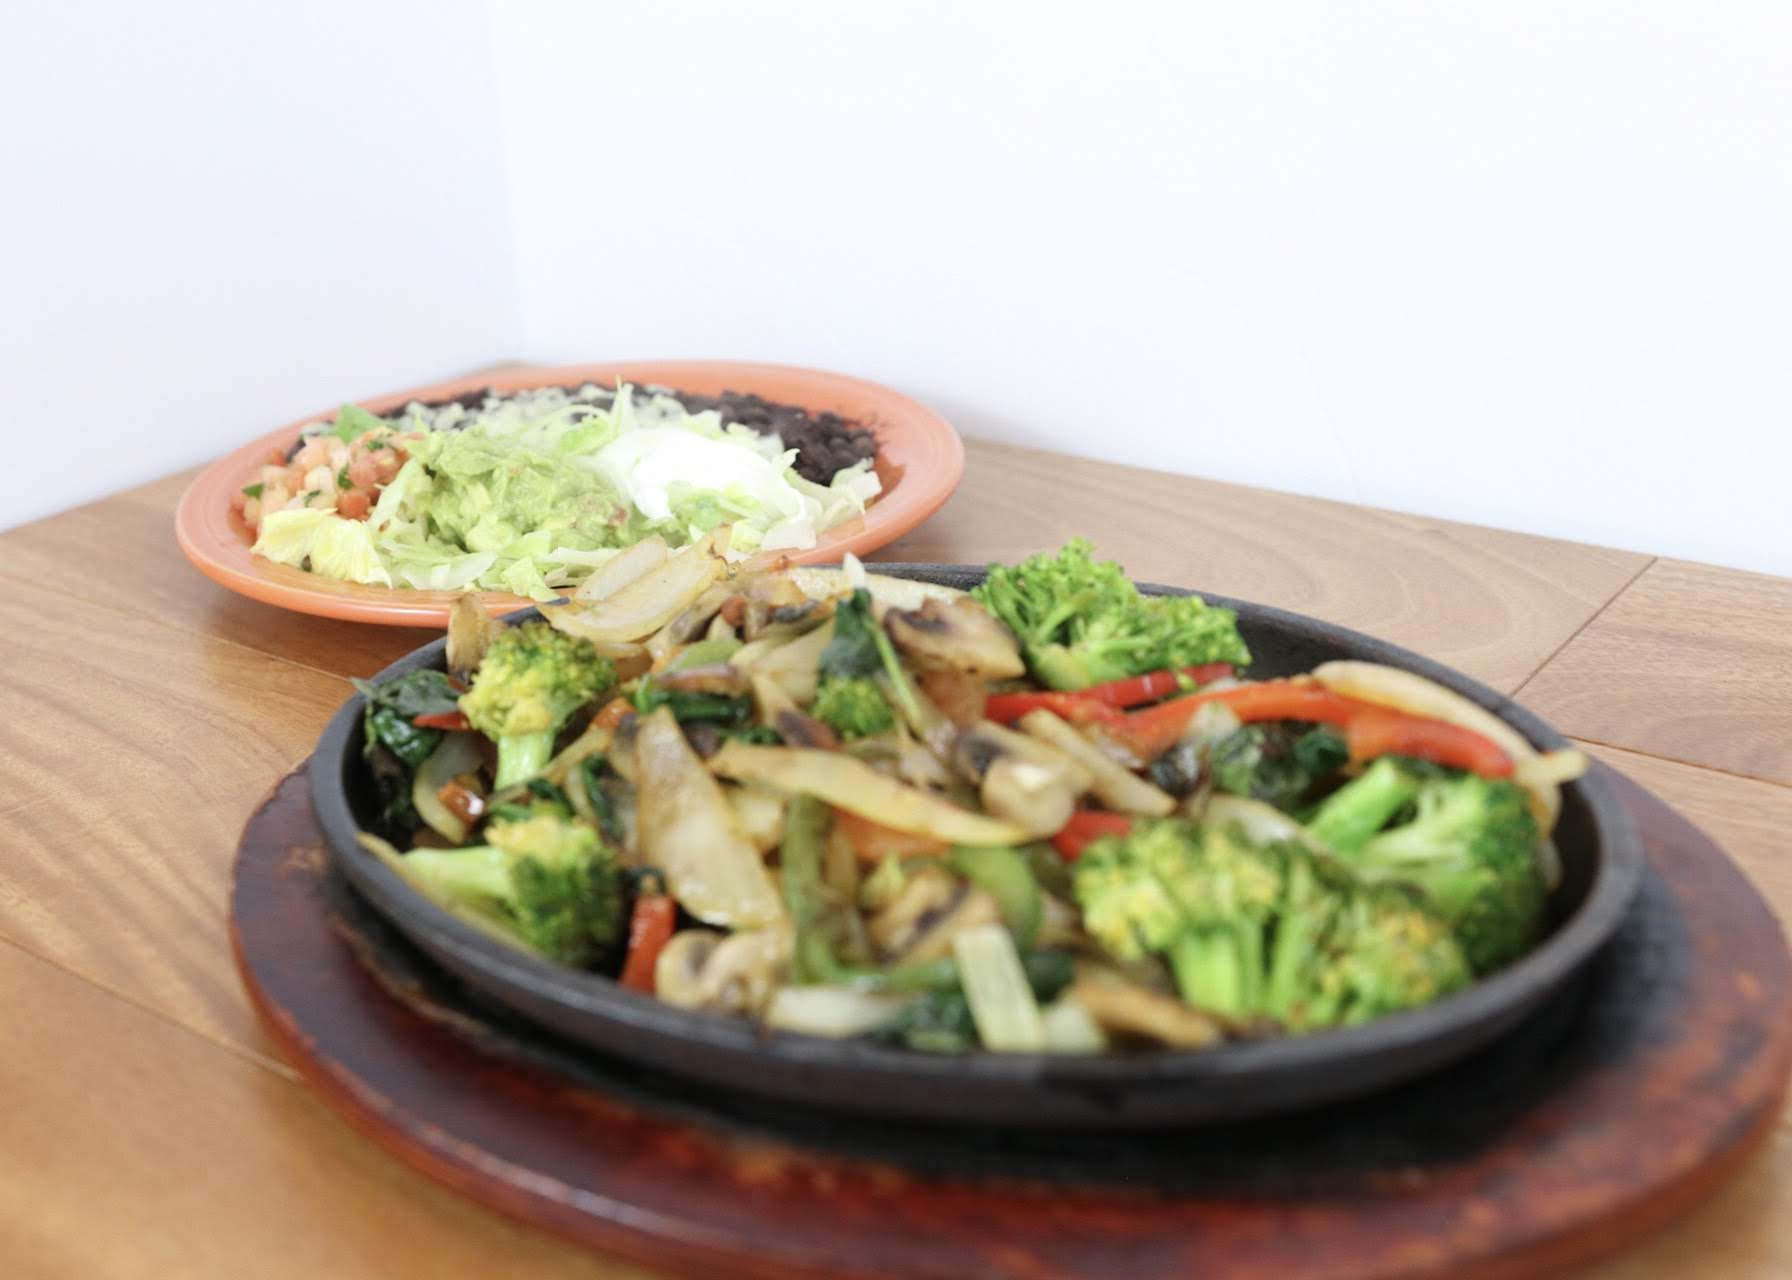 Mixed vegetable fajitas on a skillet with a side of lettuce, tomatoes, beans and rice